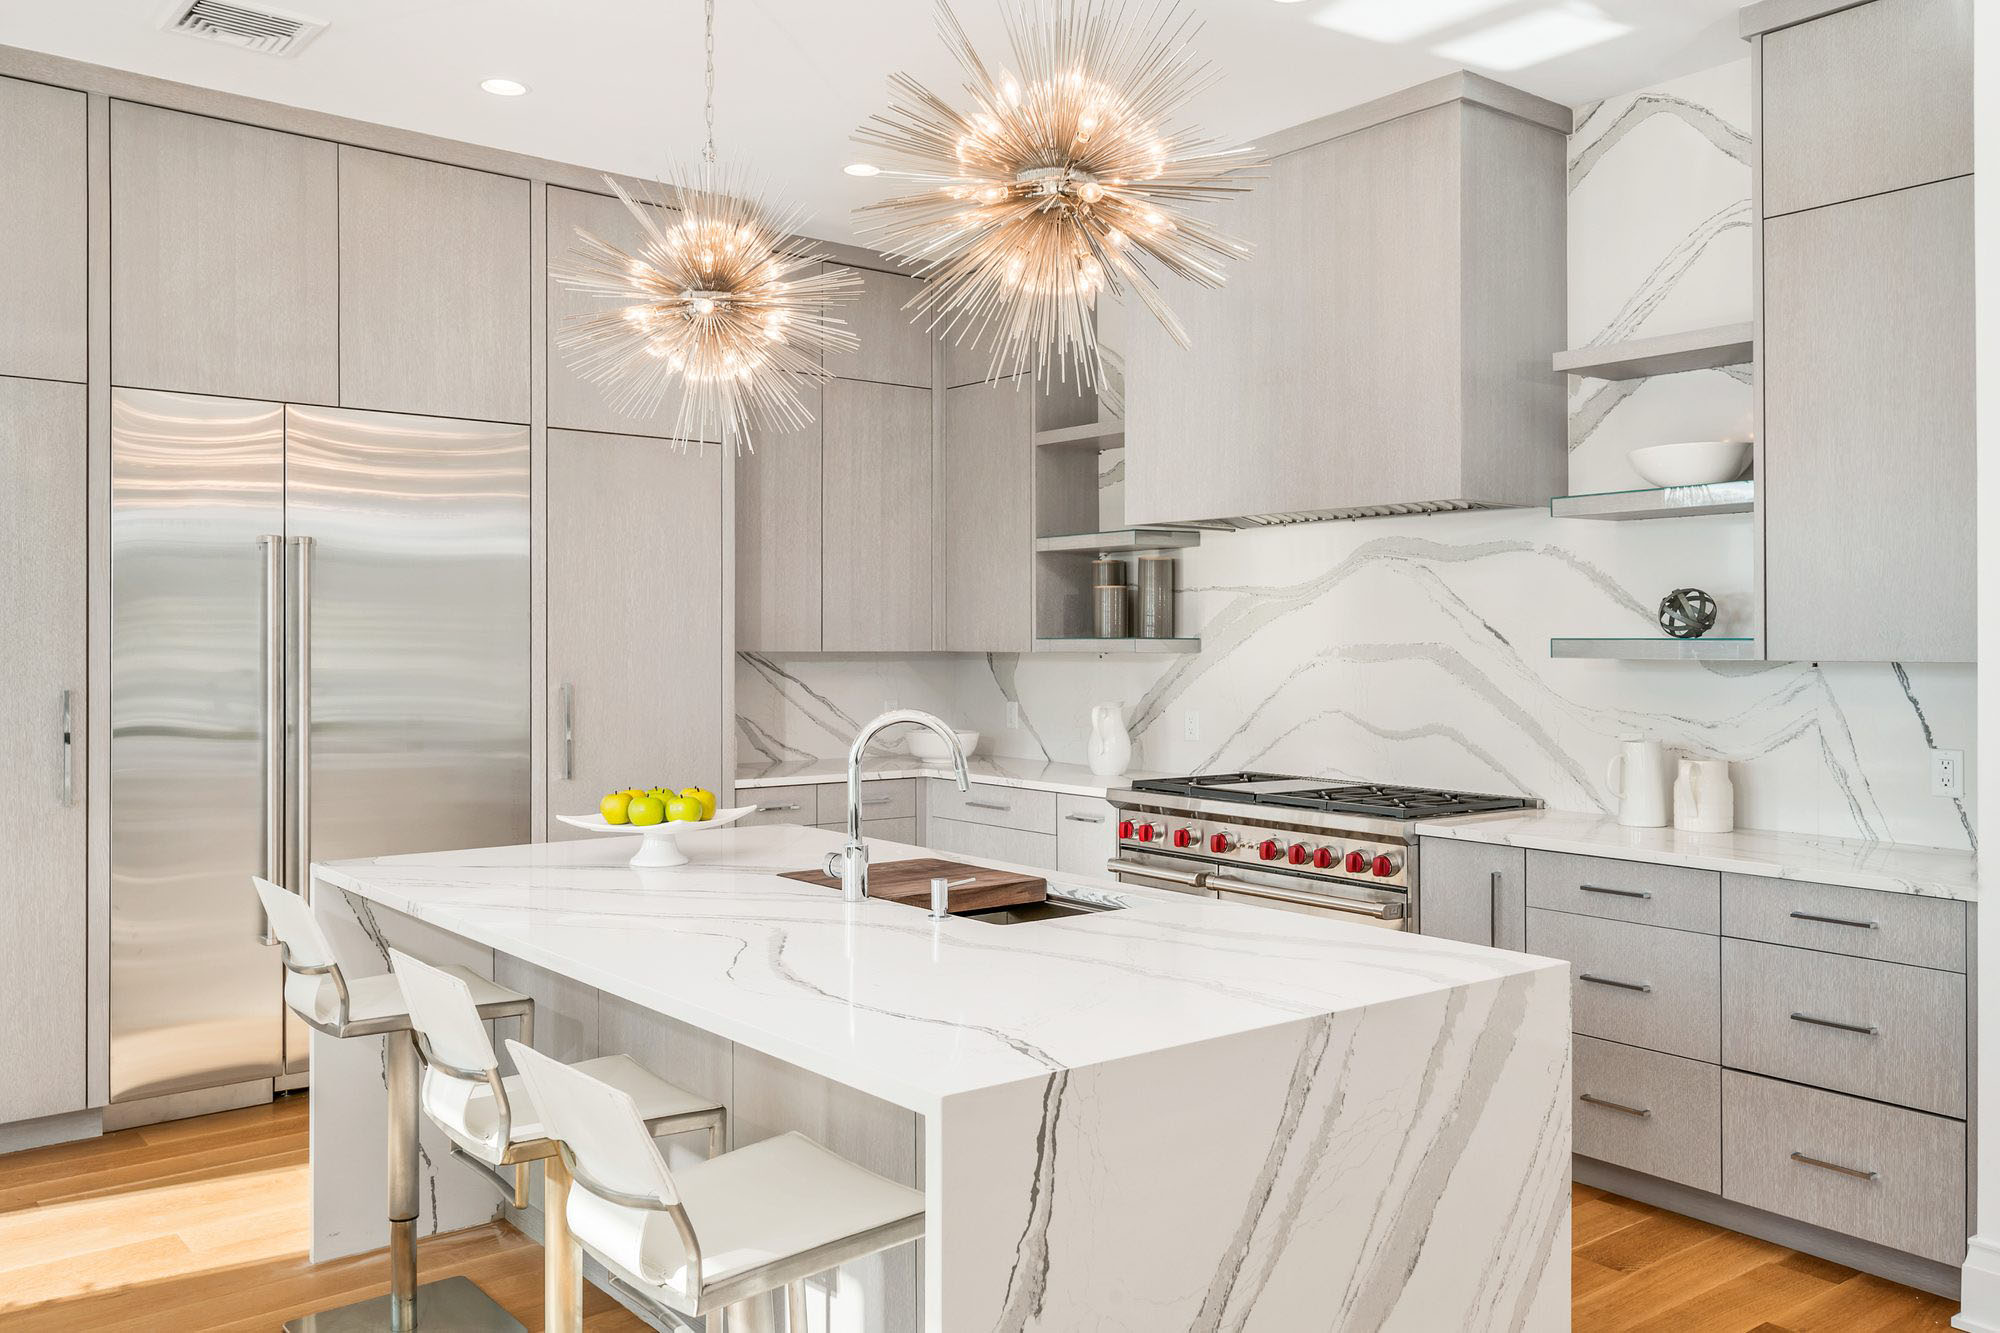 beautiful modern kitchen with marble quartz countertops and matching solid slab backsplash, flat faced light gray cabinets. Wolf stove with red knobs.